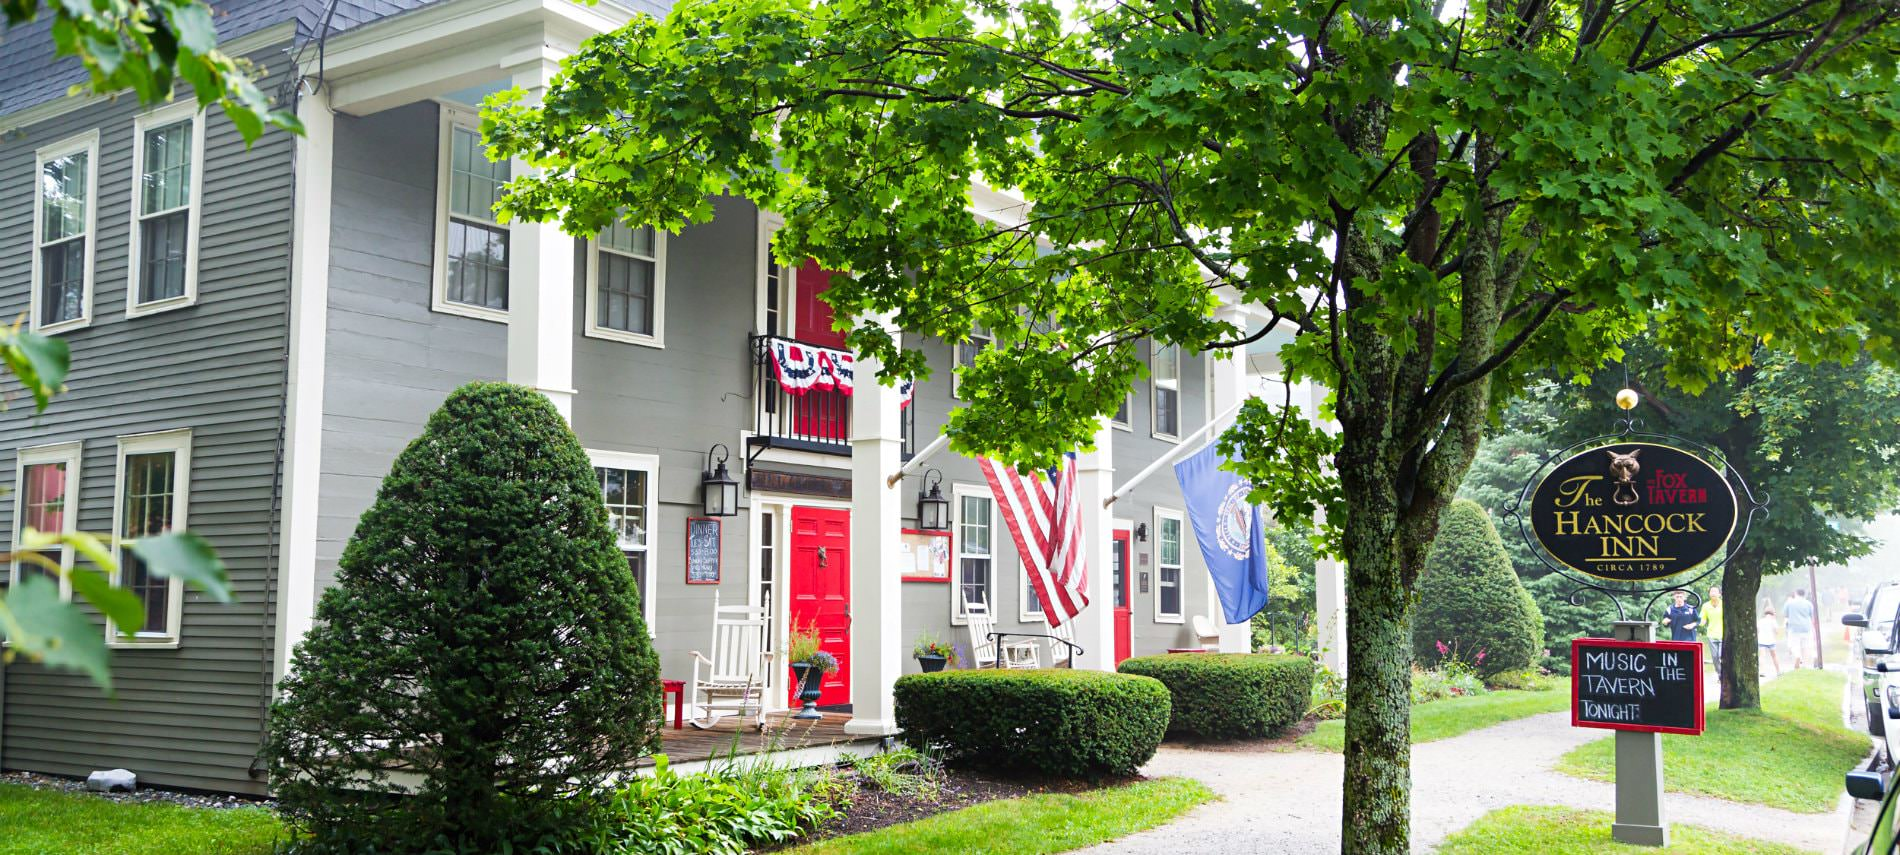 Old New England Inn surrounded by many trees and an American flag as well as other flags